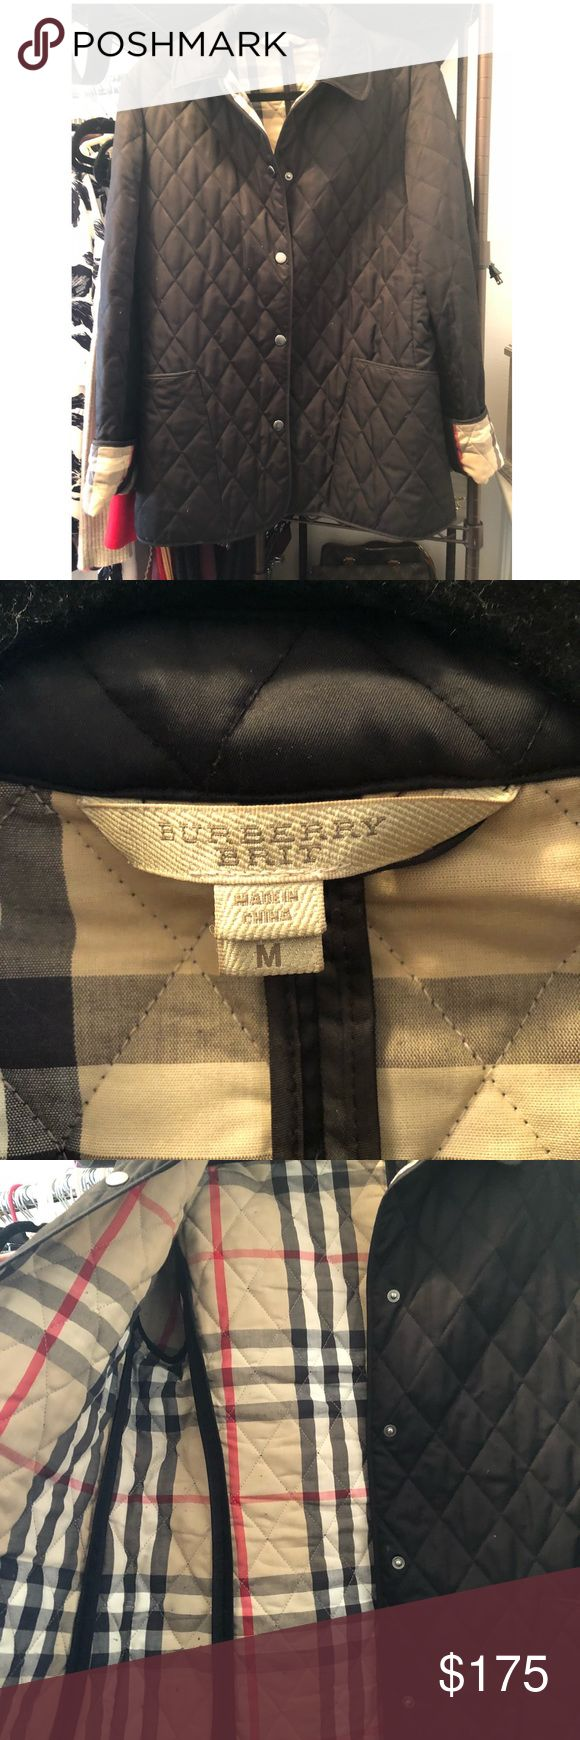 Burberry Brit Jacket size m. Hello I'm selling my Burberry Brit size medium jacket. Good condition. Burberry Jackets & Coats